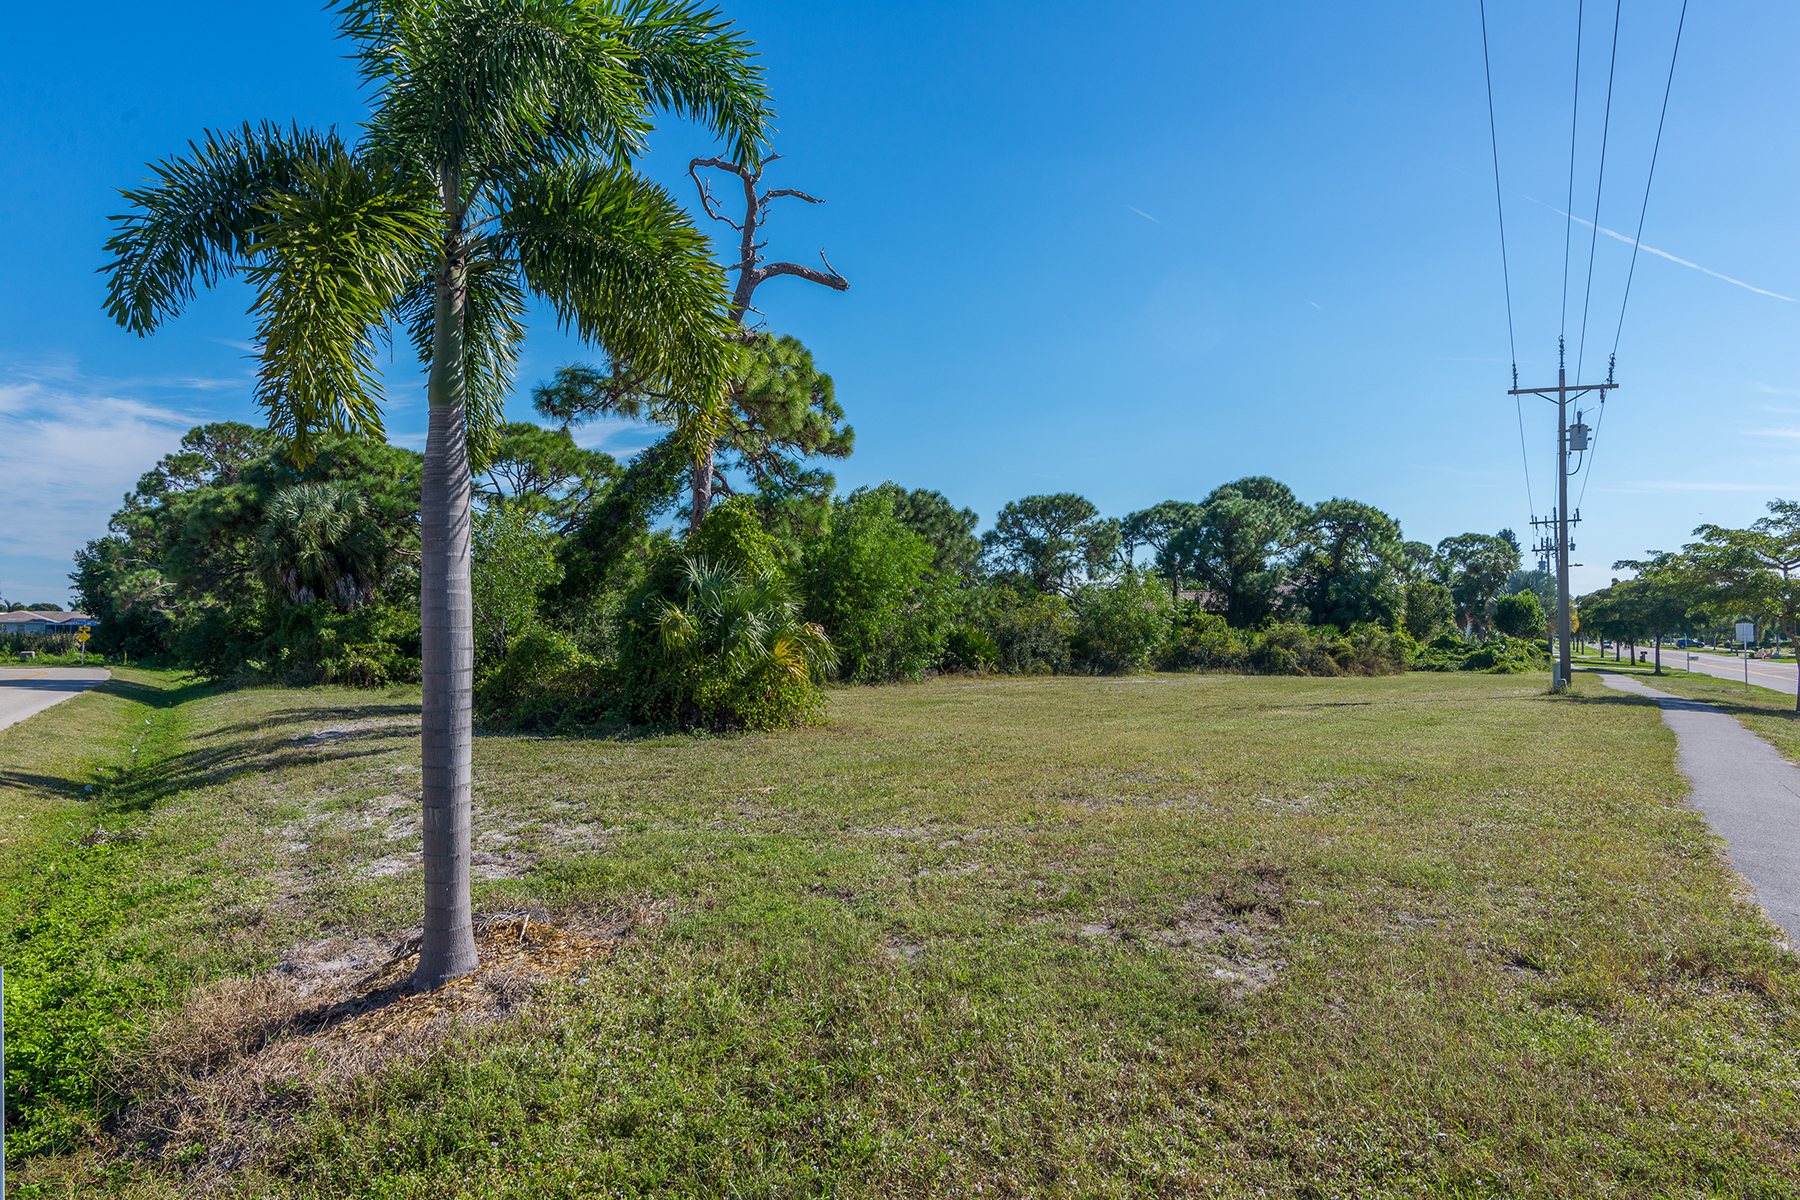 Land for Sale at MARCO ISLAND - BALD EAGLE DRIVE 391 Bald Eagle Dr Marco Island, Florida 34145 United States